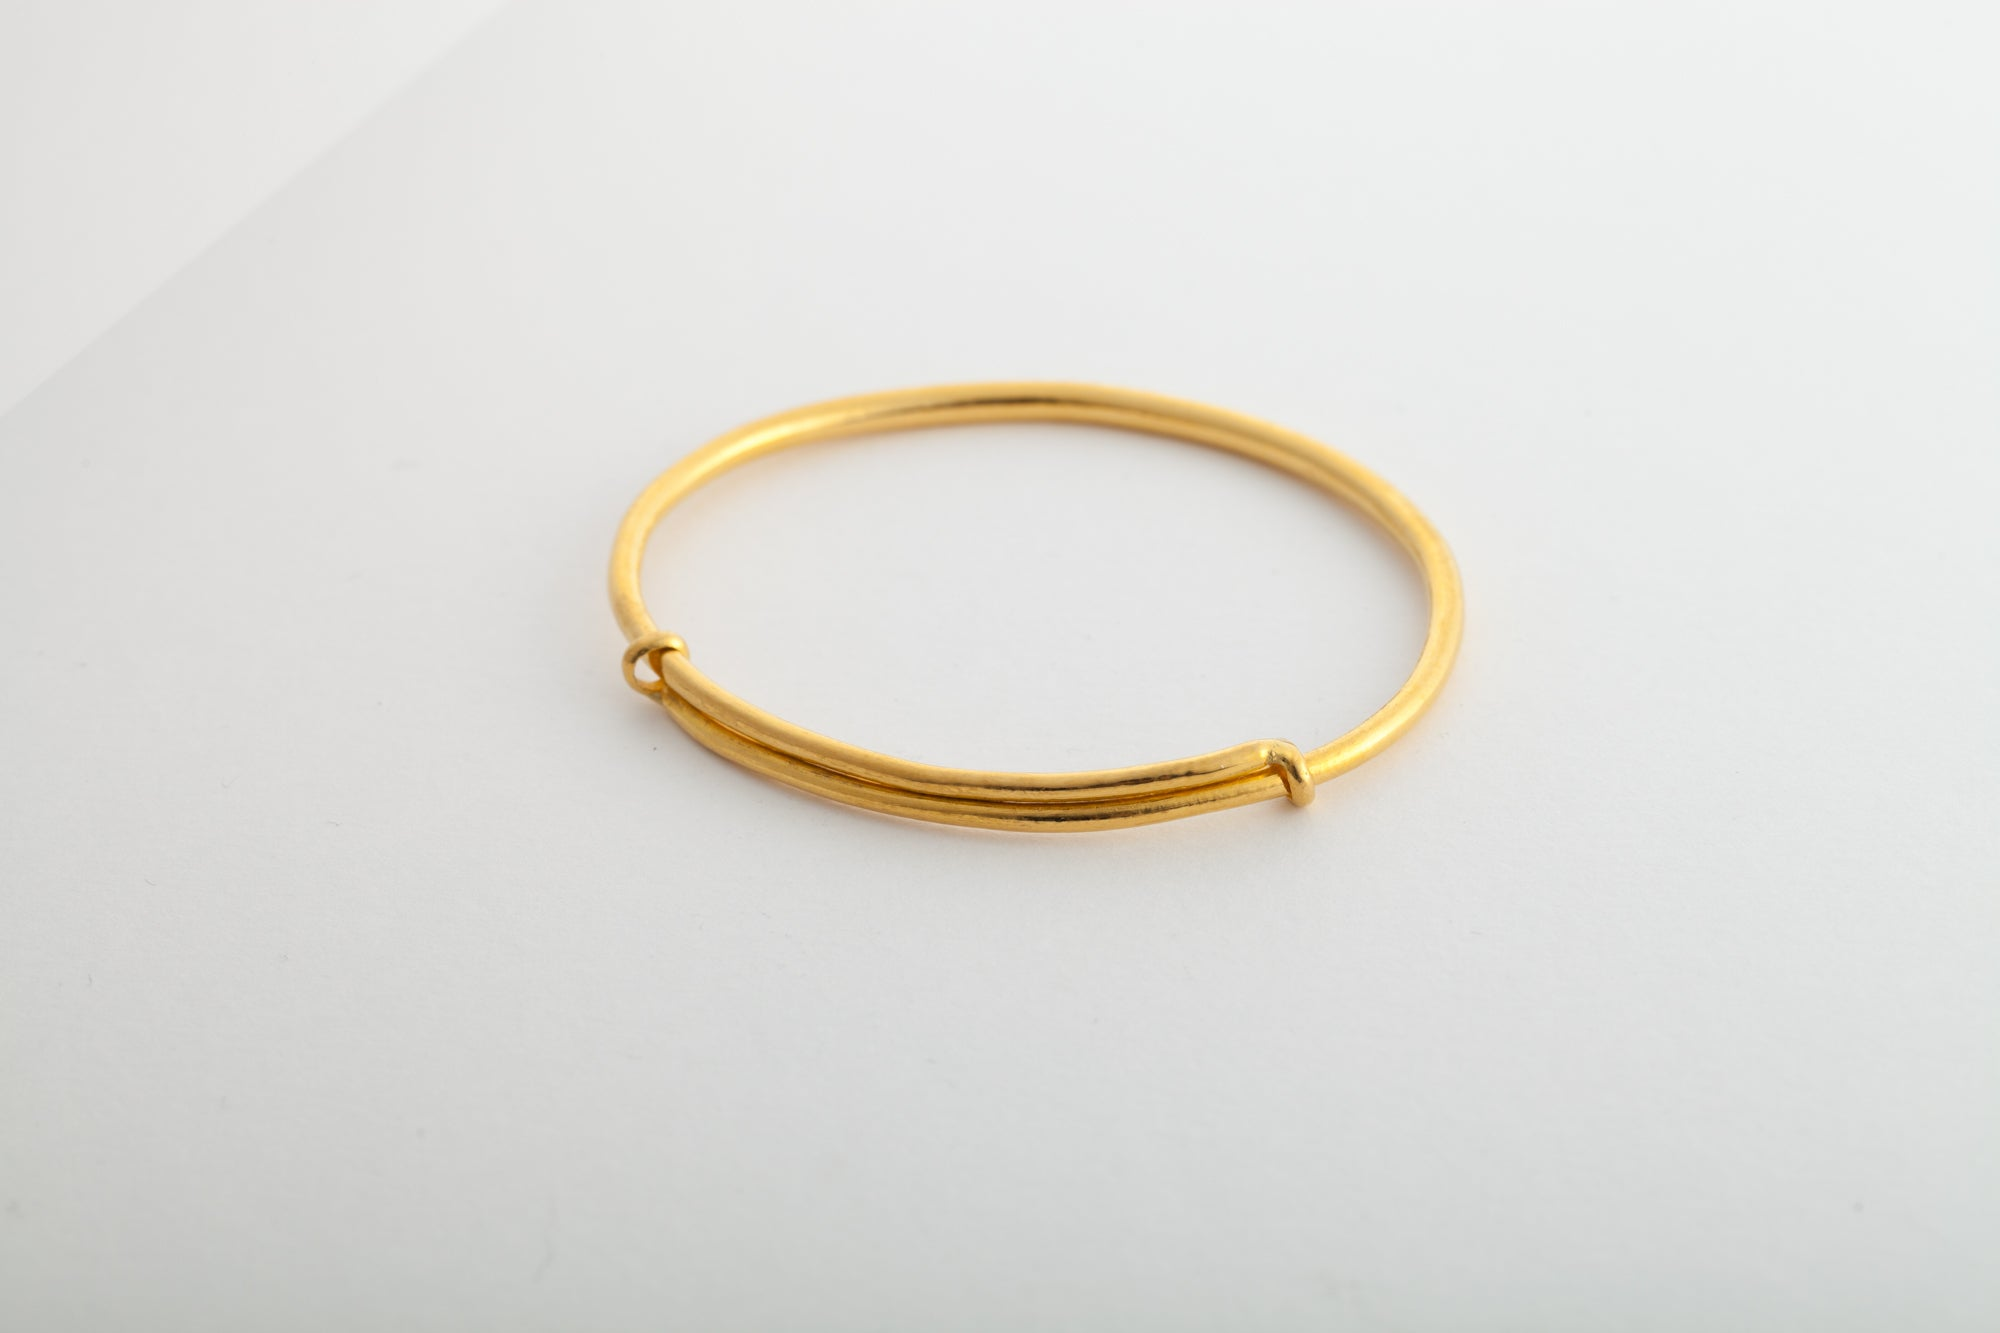 gold fashion detail bracelet jewellery models product ladies xuping